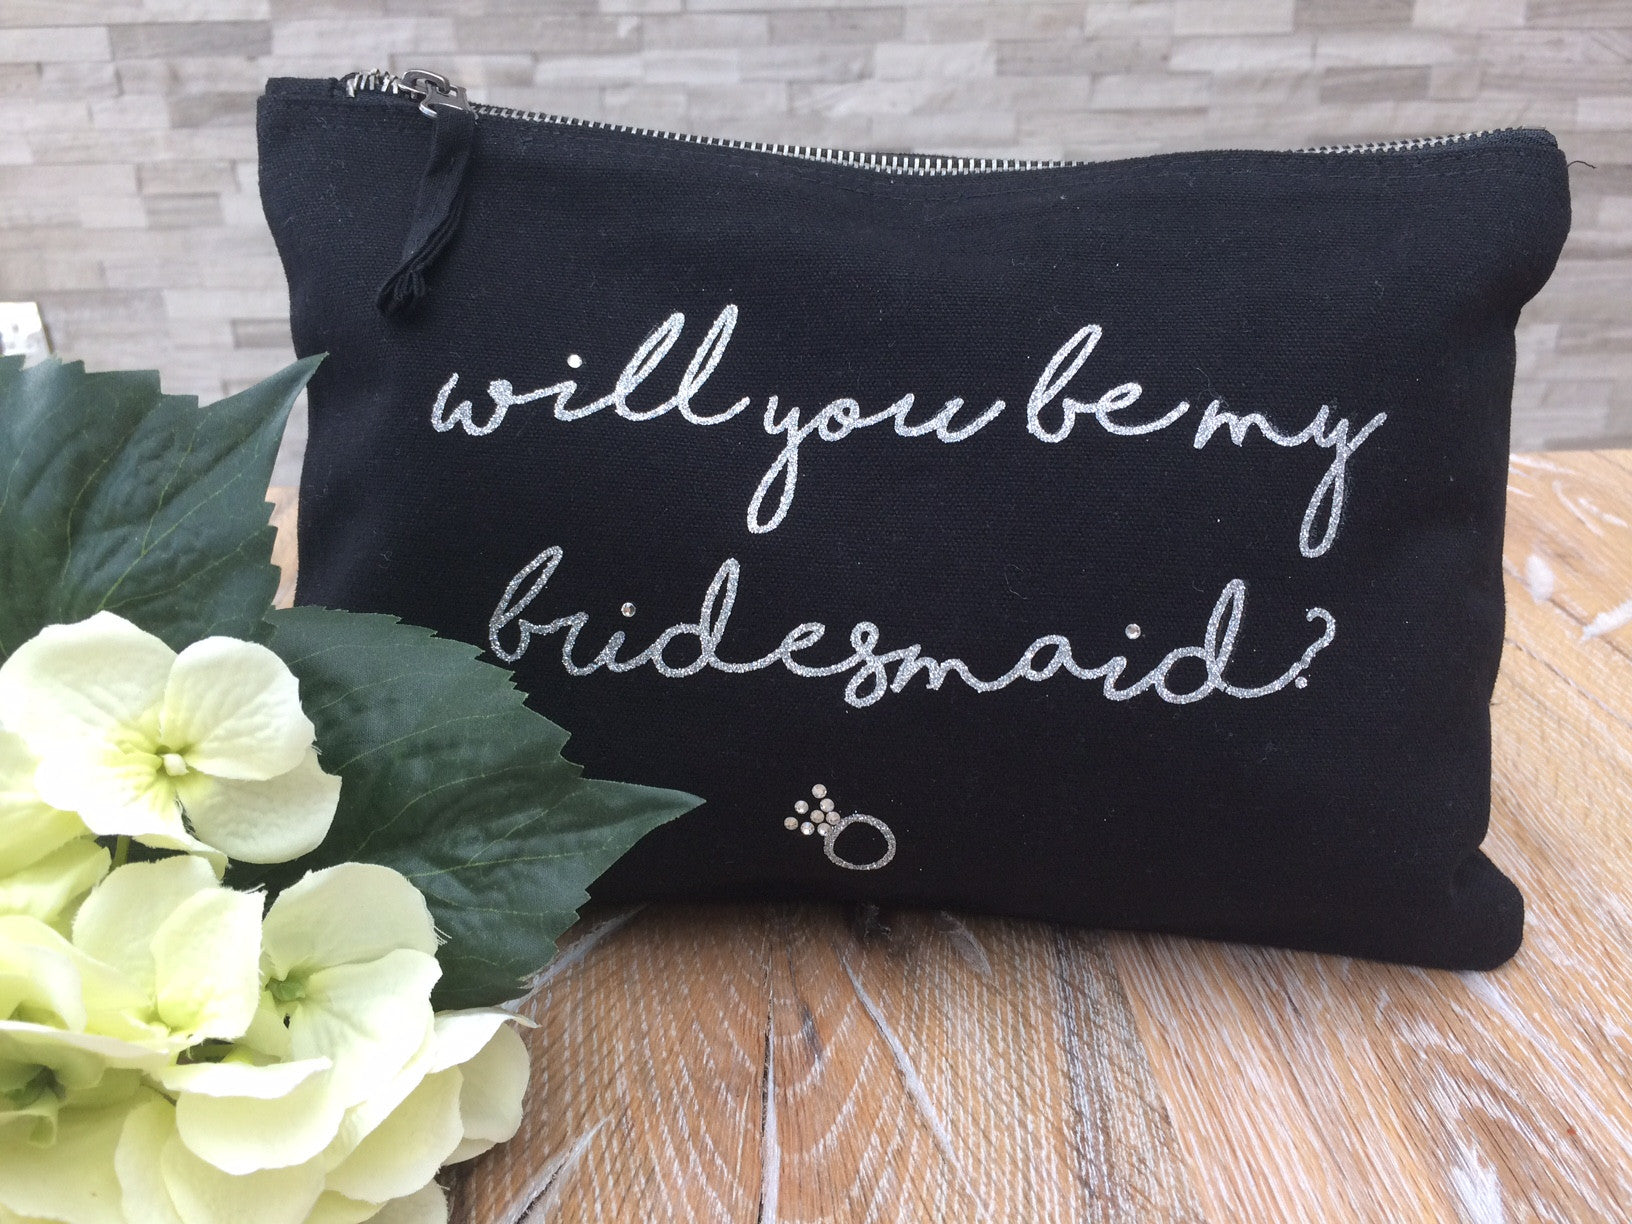 Will you be my bridesmaid personalised make up bag - Koko Kimono